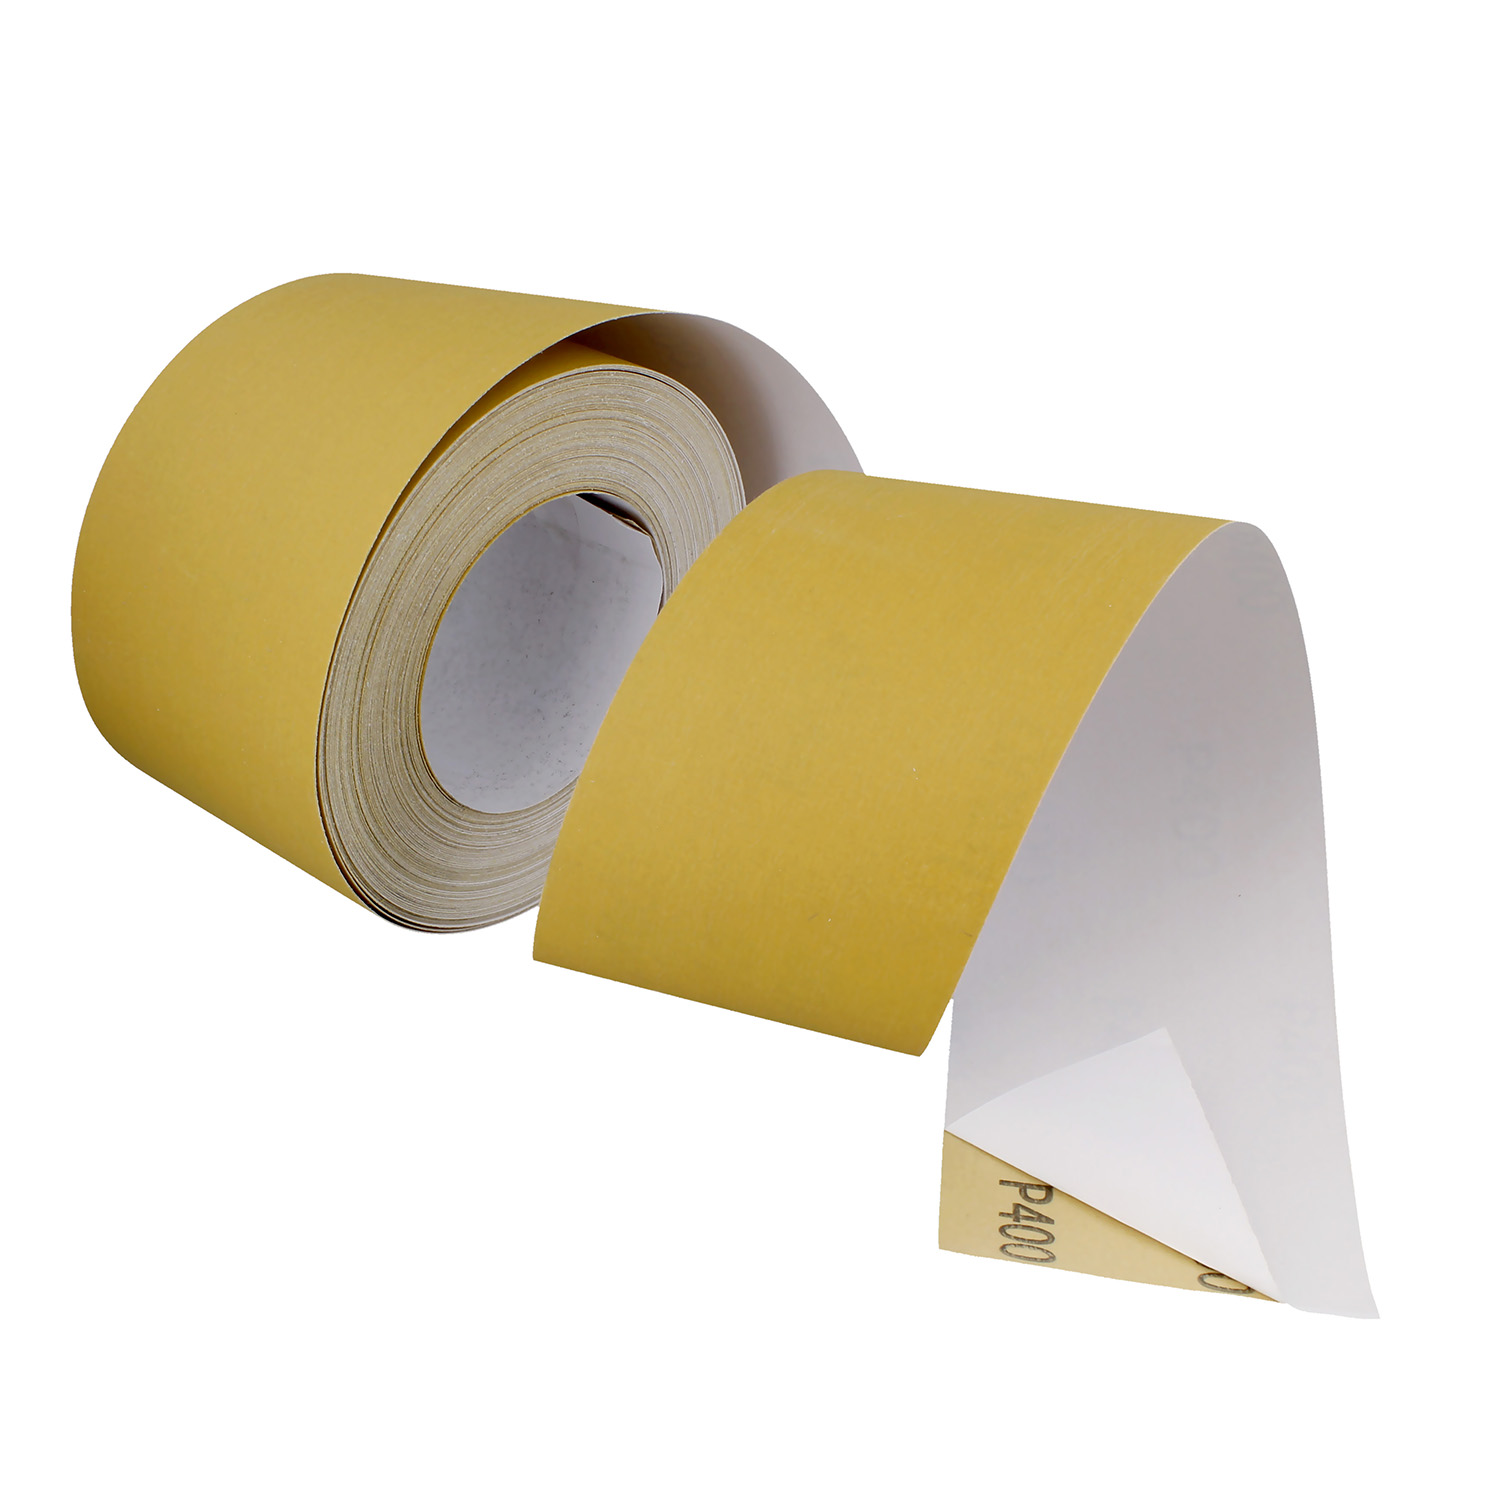 ABN-Adhesive-Sandpaper-Roll-2-3-4-Inch-x-20-Yards-Aluminum-Oxide-PSA thumbnail 31